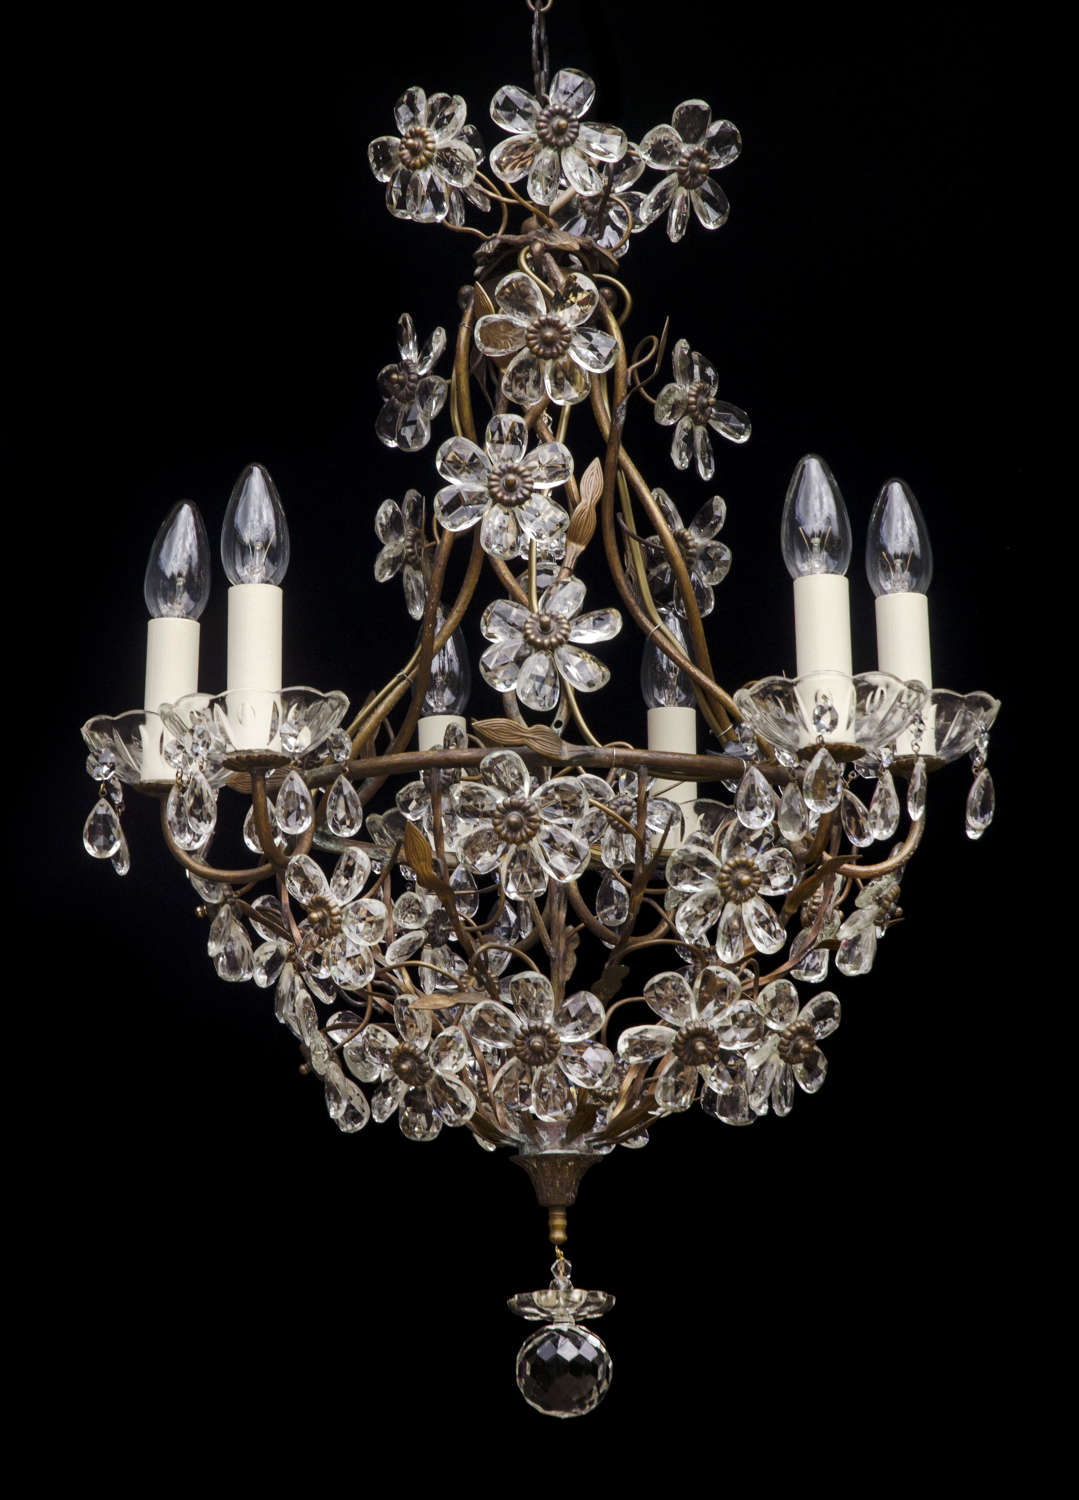 6 light Italian Florentine Antique Chandelier with crystal flowers